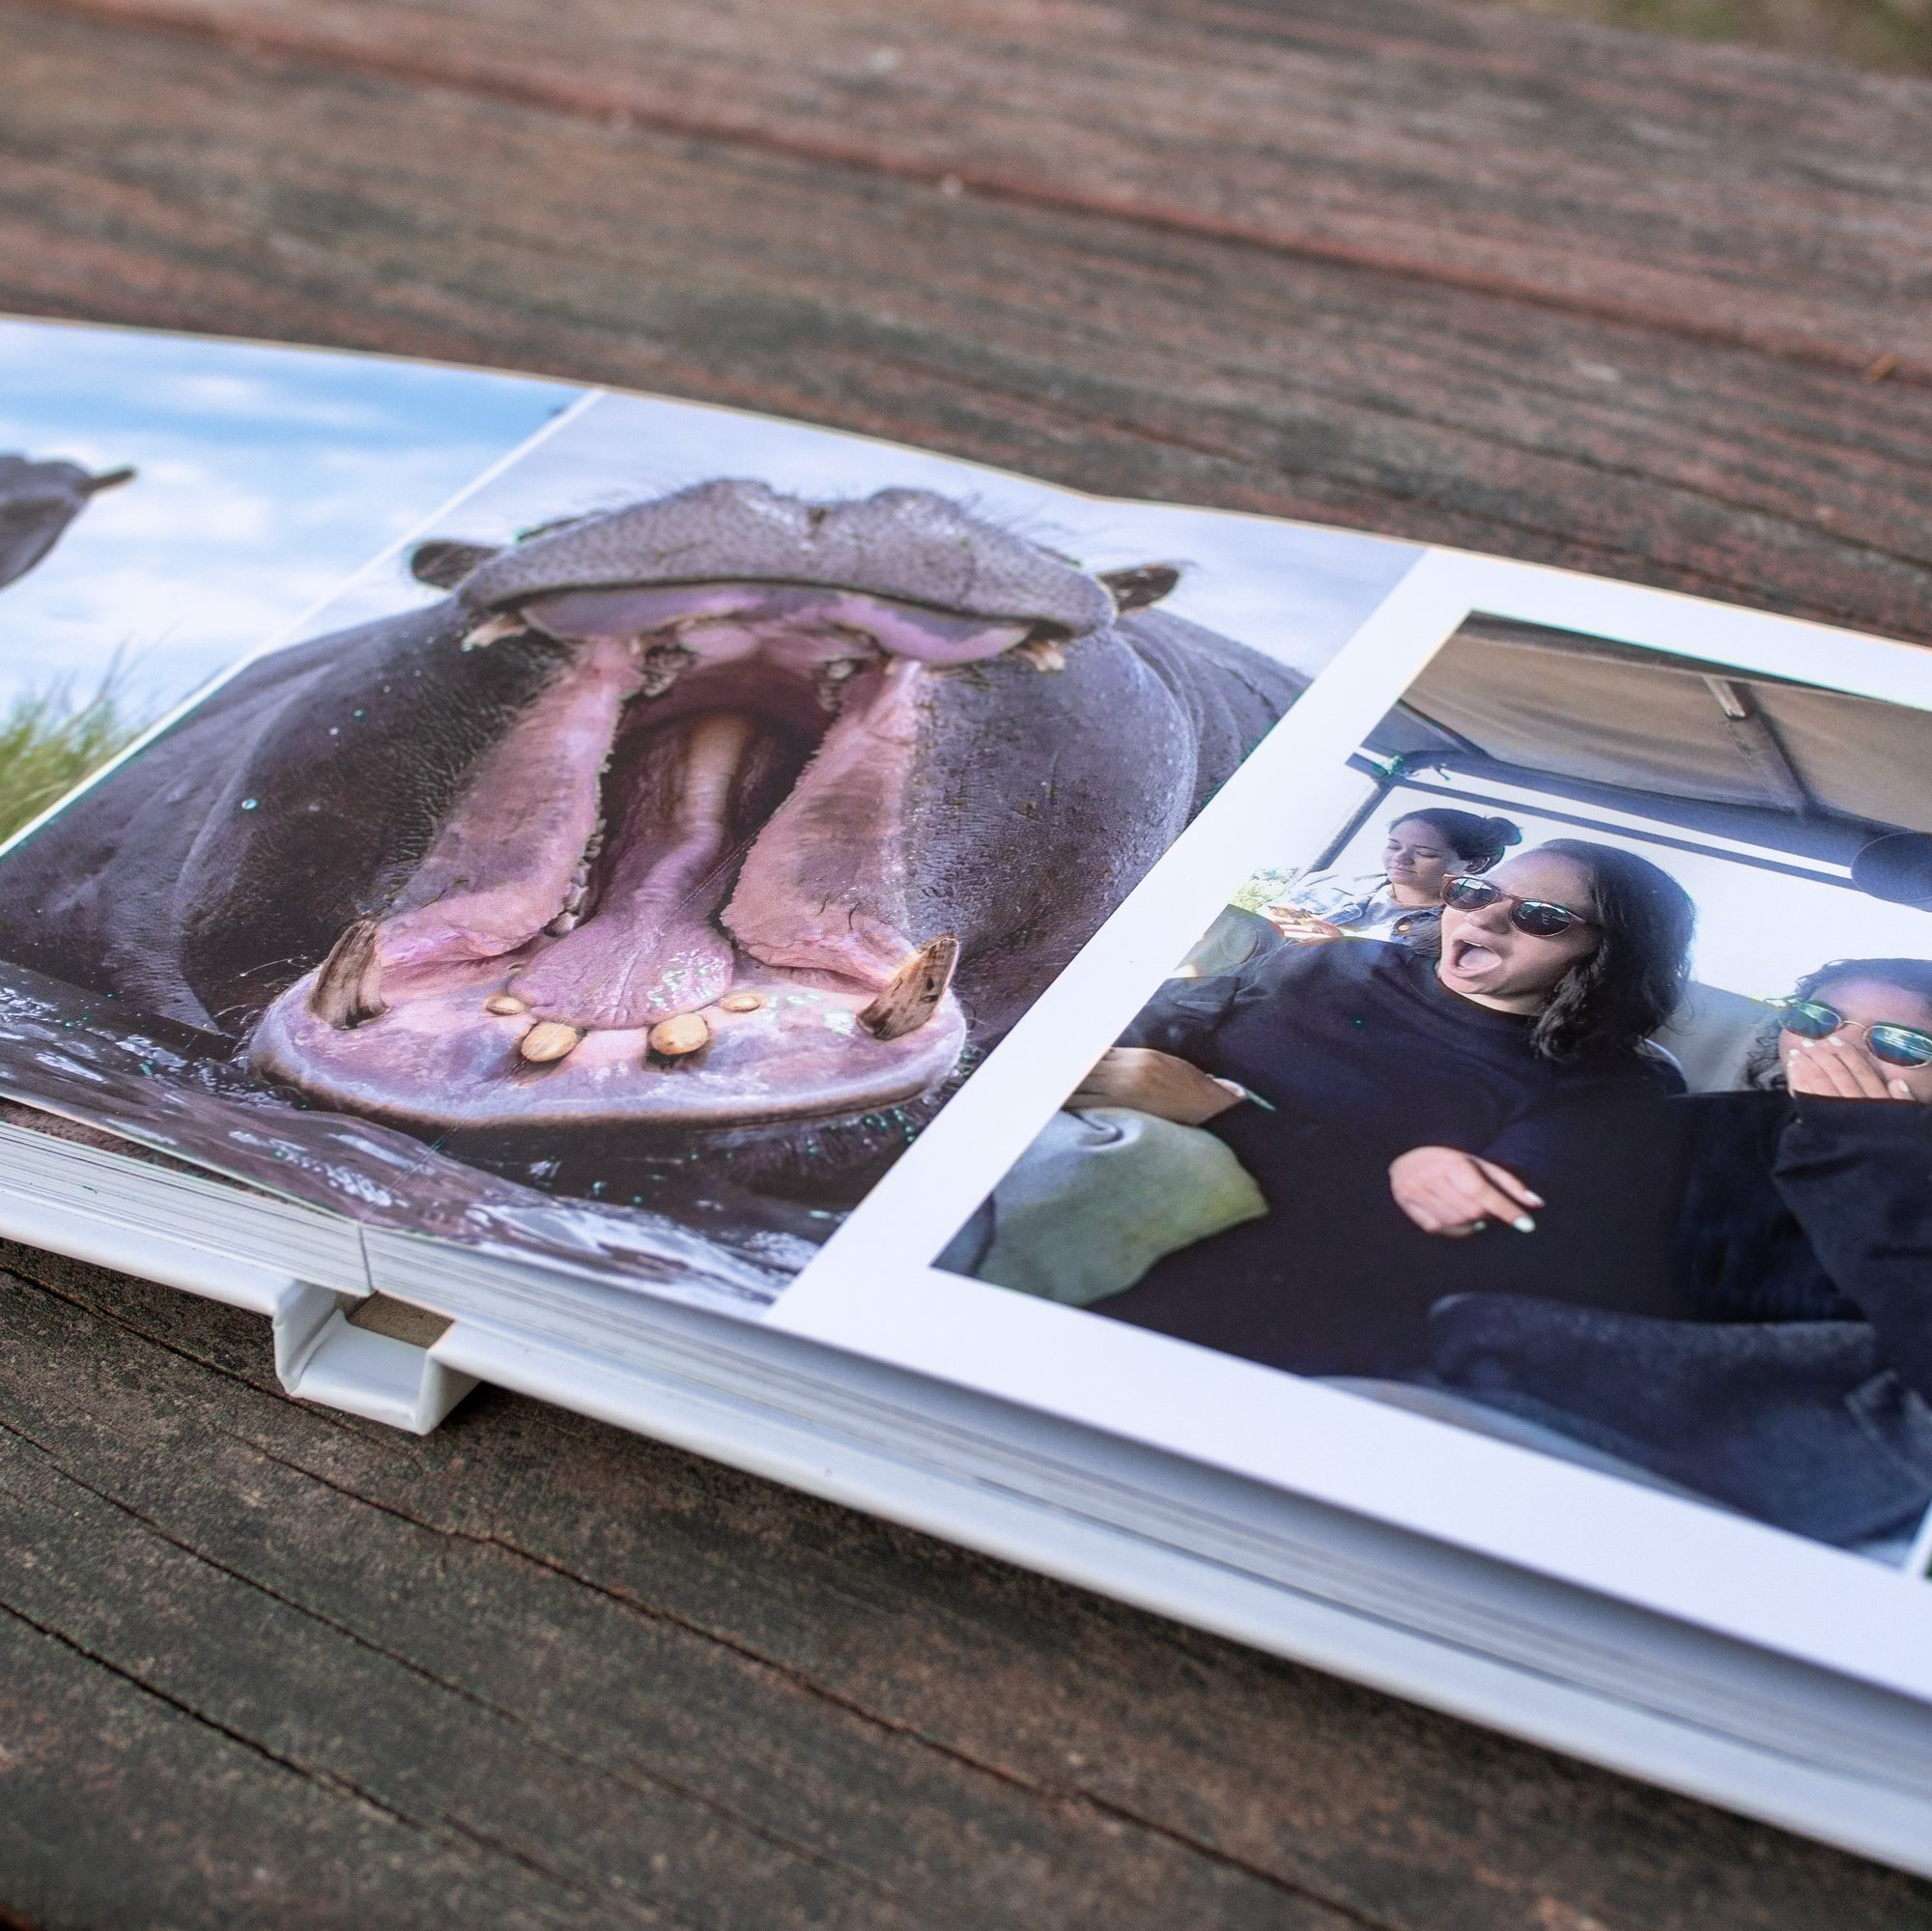 An open Luminta Photobook showing a hippo with its mouth open and another page with 2 people reacting